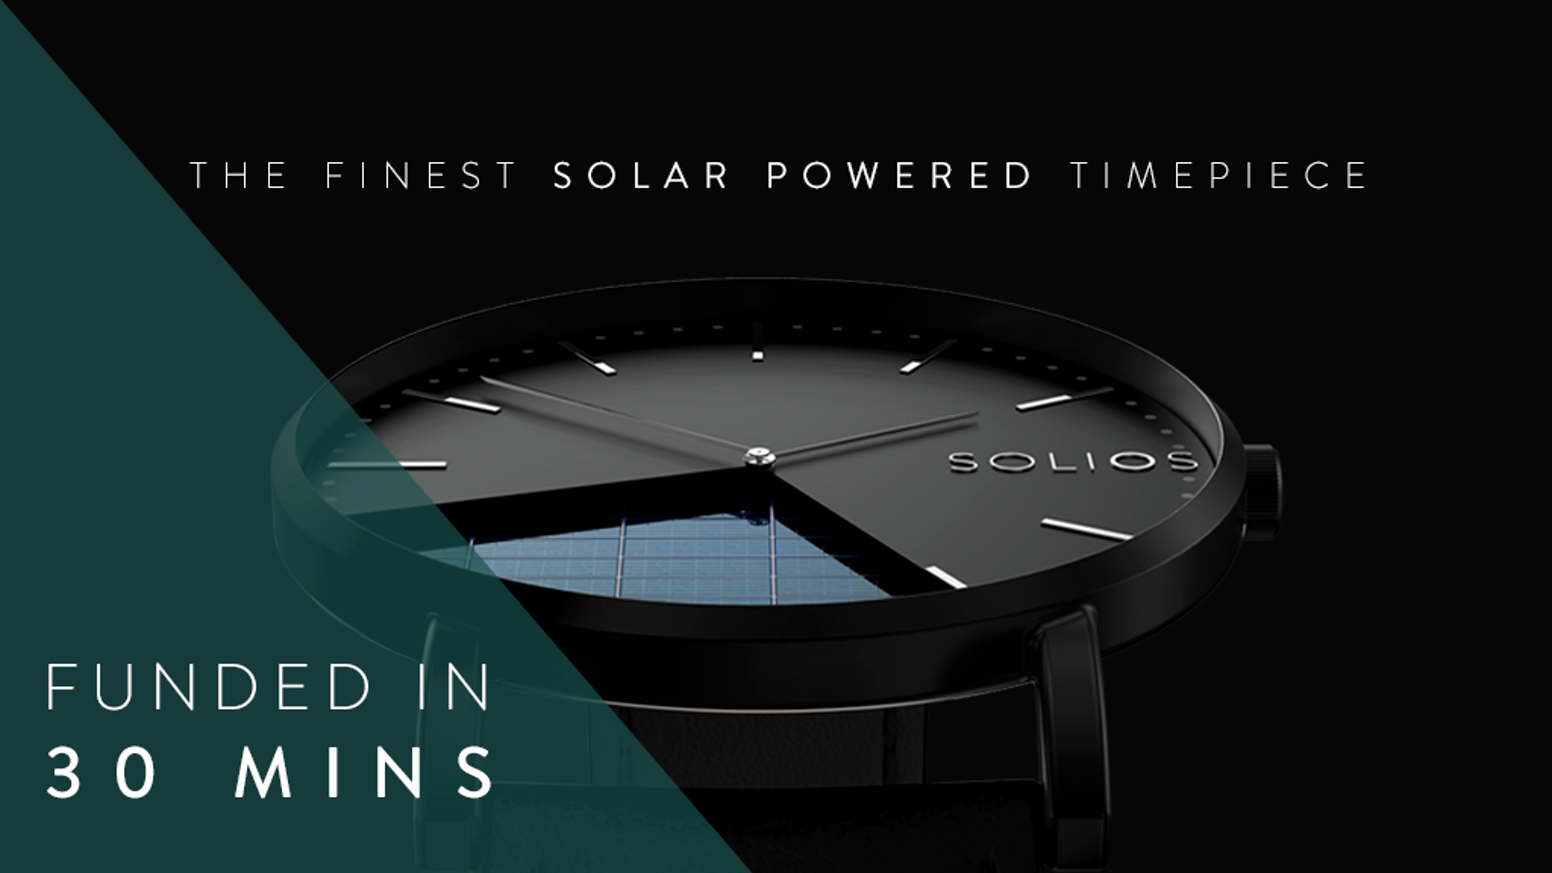 Innovative and sustainable solar powered timepiece, without having to sacrifice on elegant design, affordable price or durable quality.